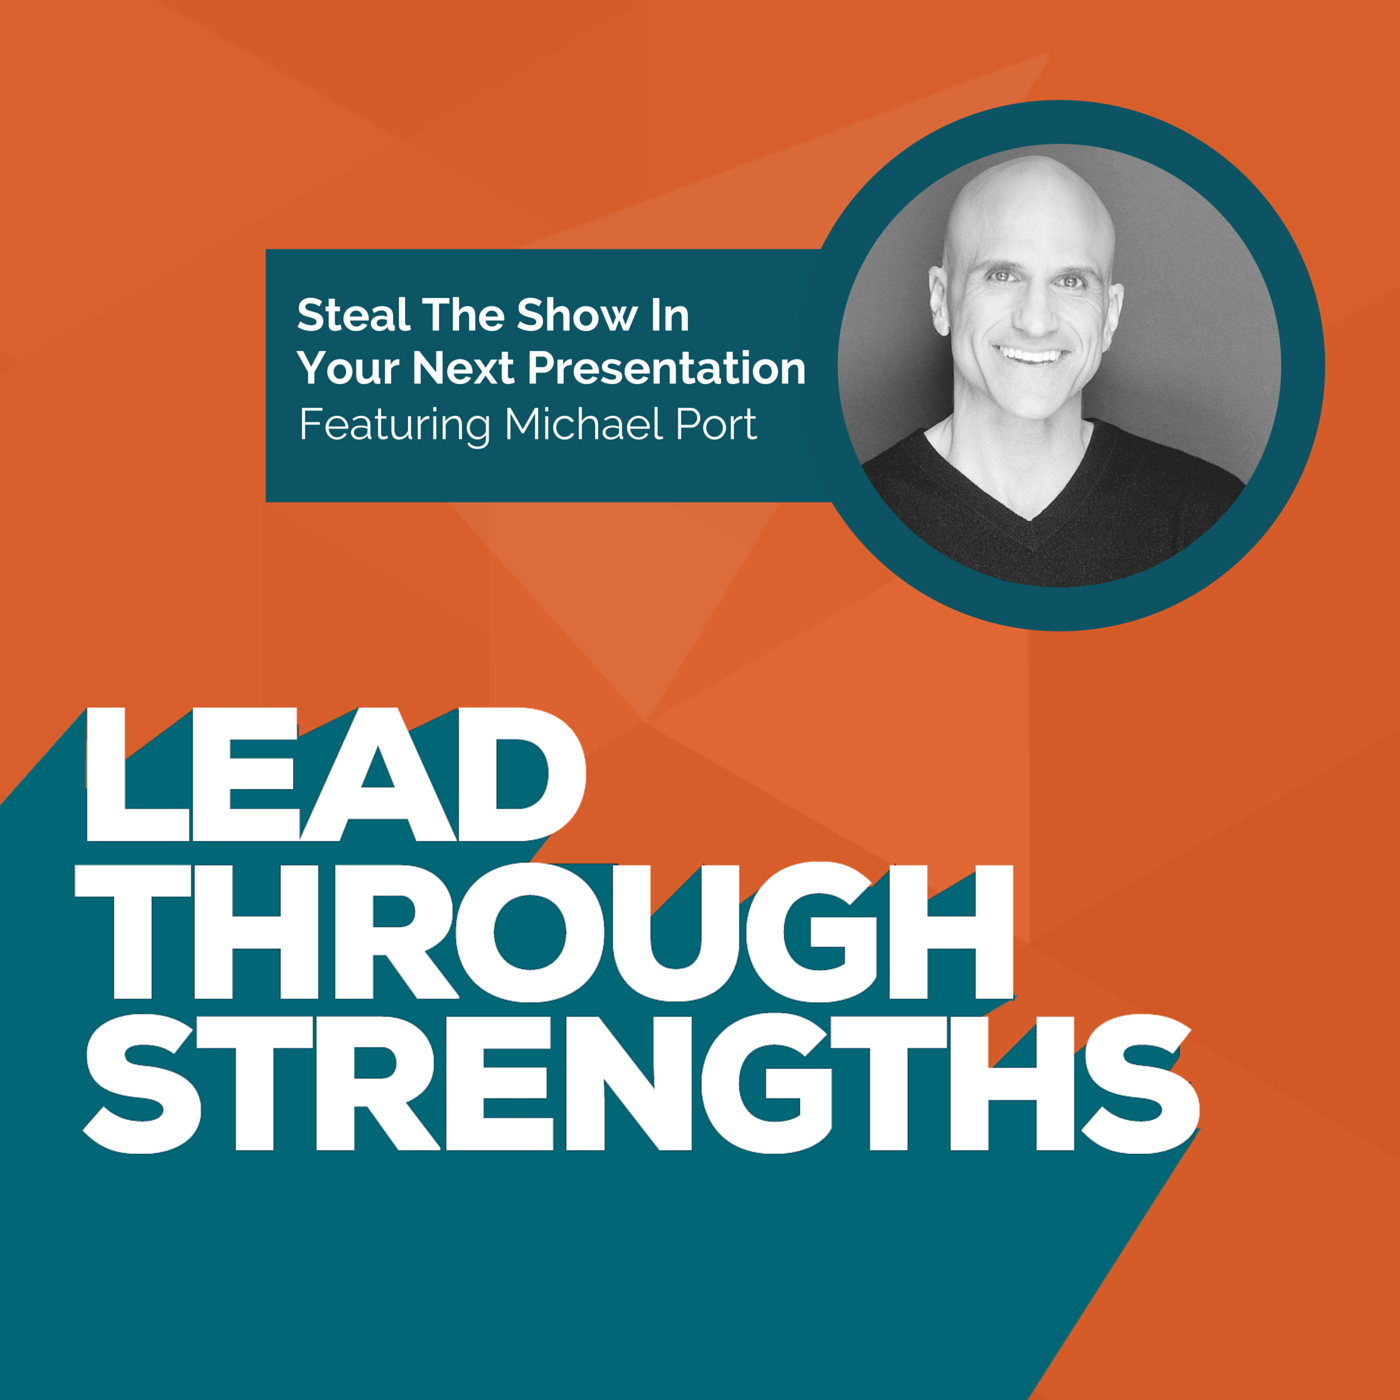 Steal The Show In Your Next Presentation At Work - With Michael Port